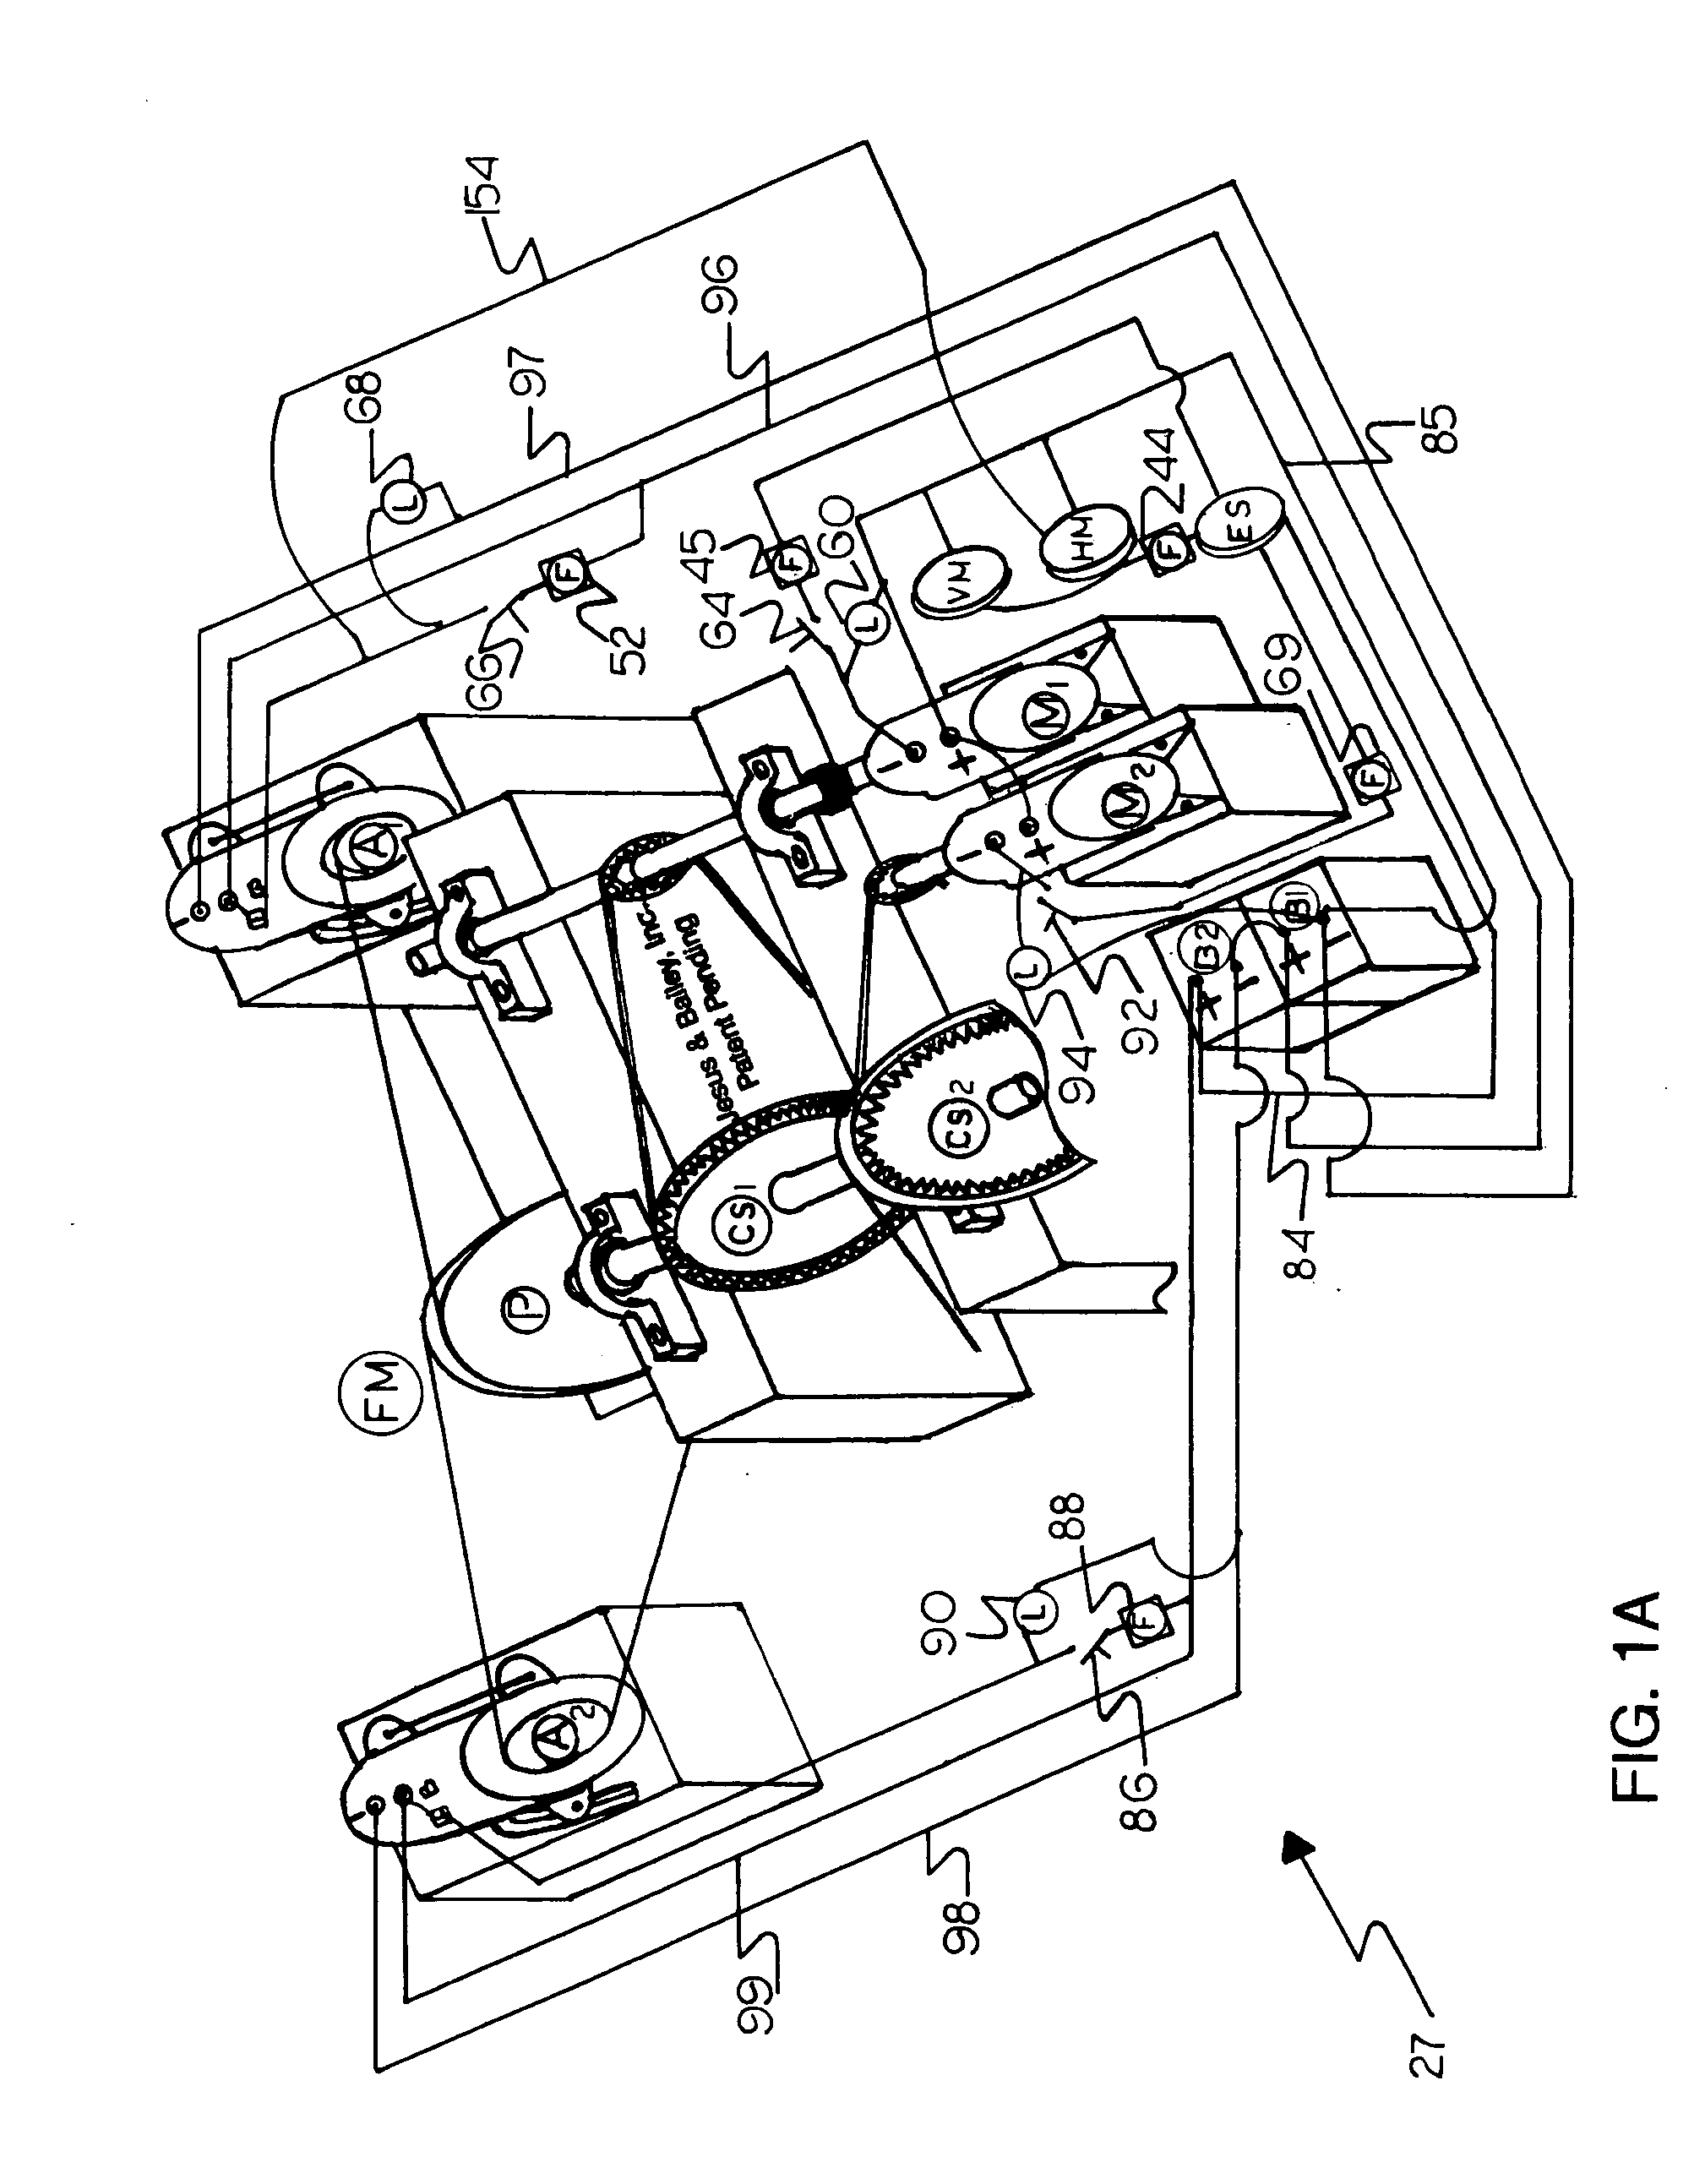 Patent US20050011688 - Pneumatic and fluid engines - Google Patents